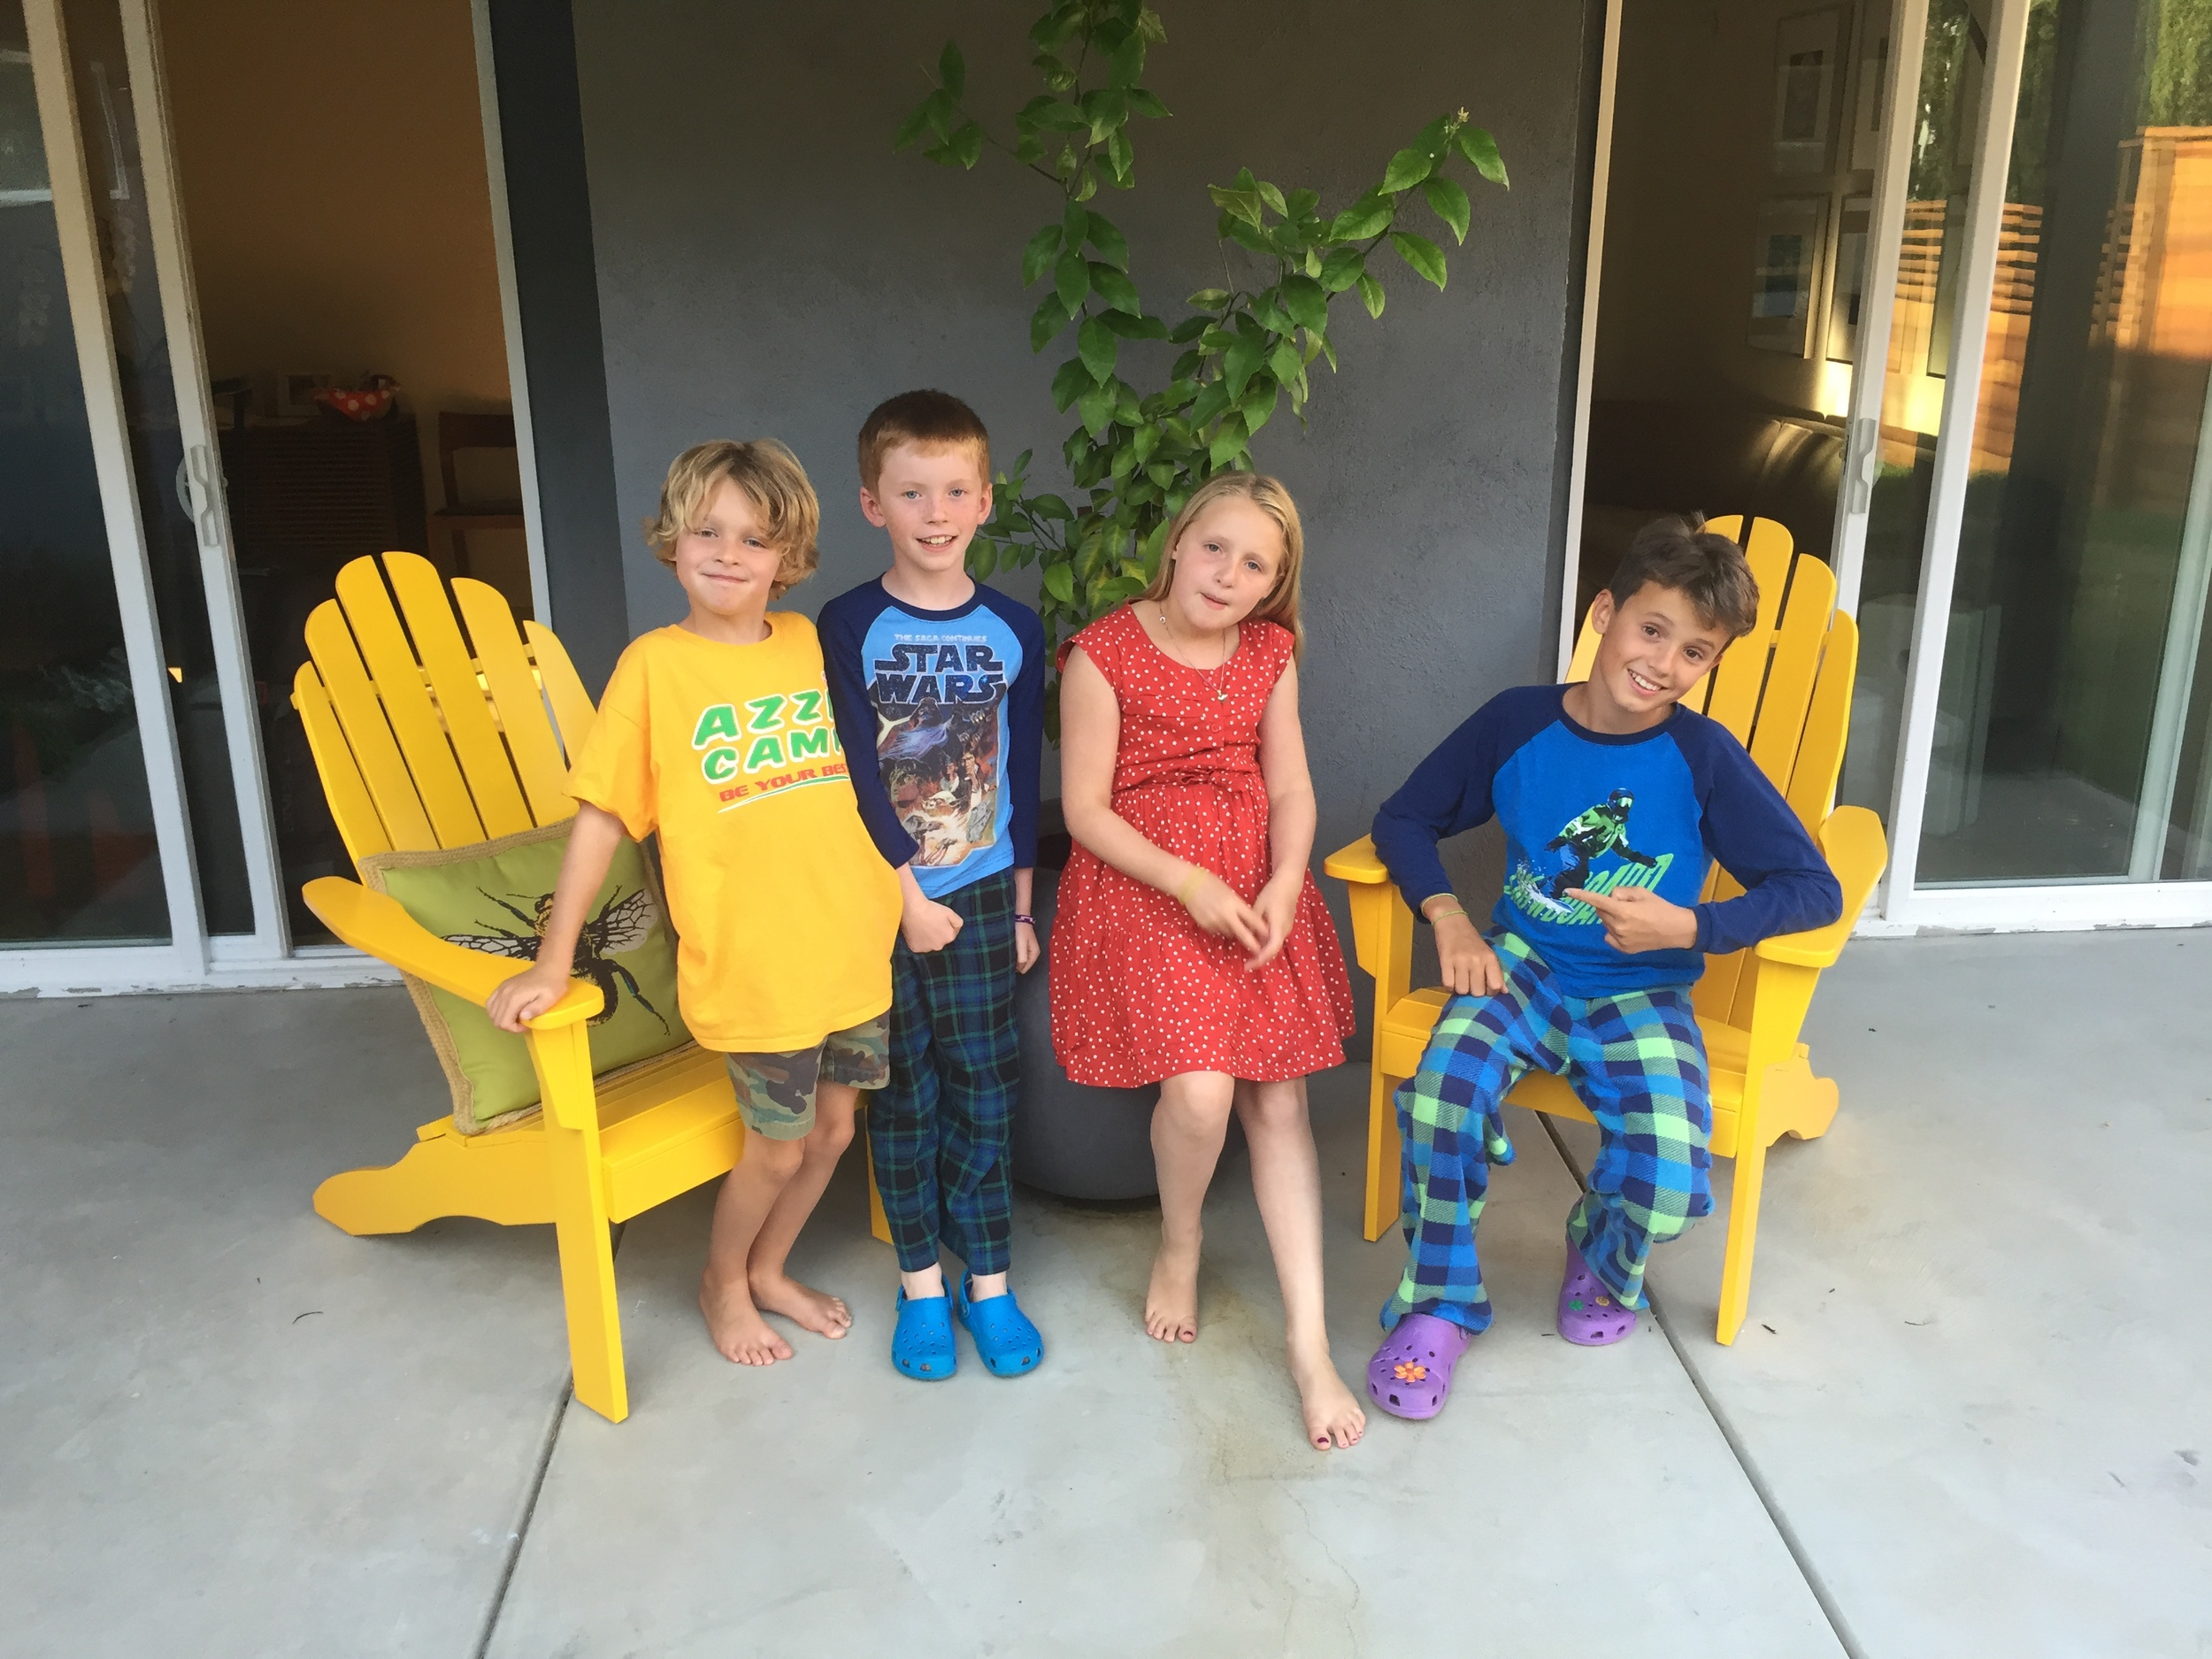 Spencer, Max, Jacqui and Sully